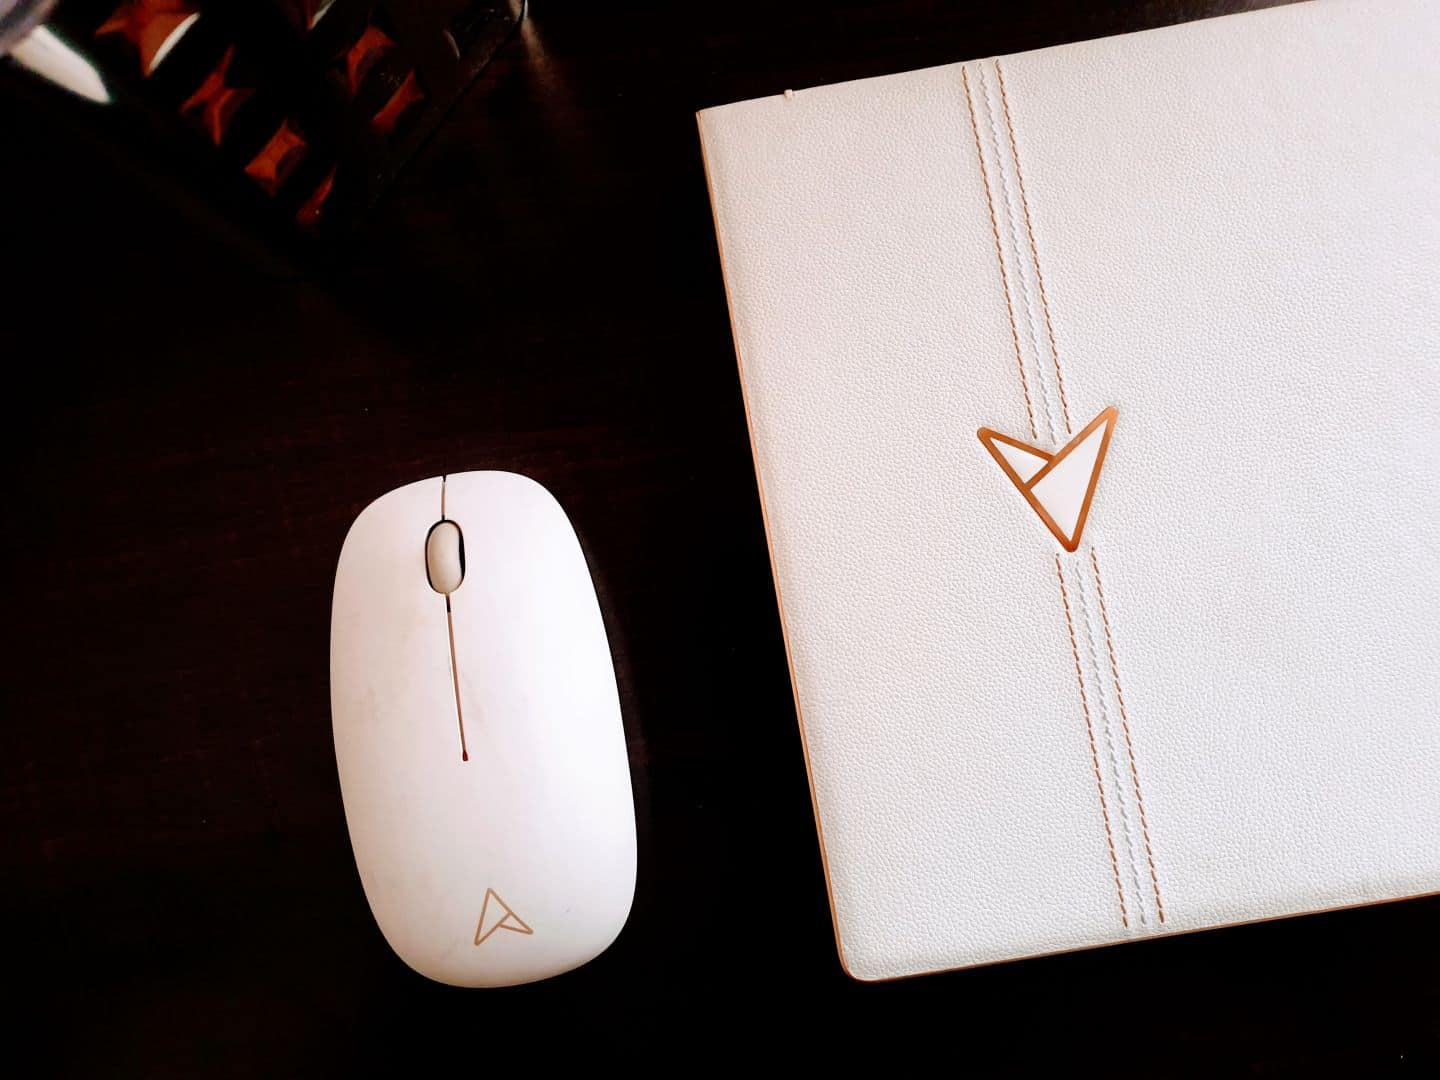 ASUS Zenbook Edition 30 UX334FL Review - Luxury at its Finest! - 4